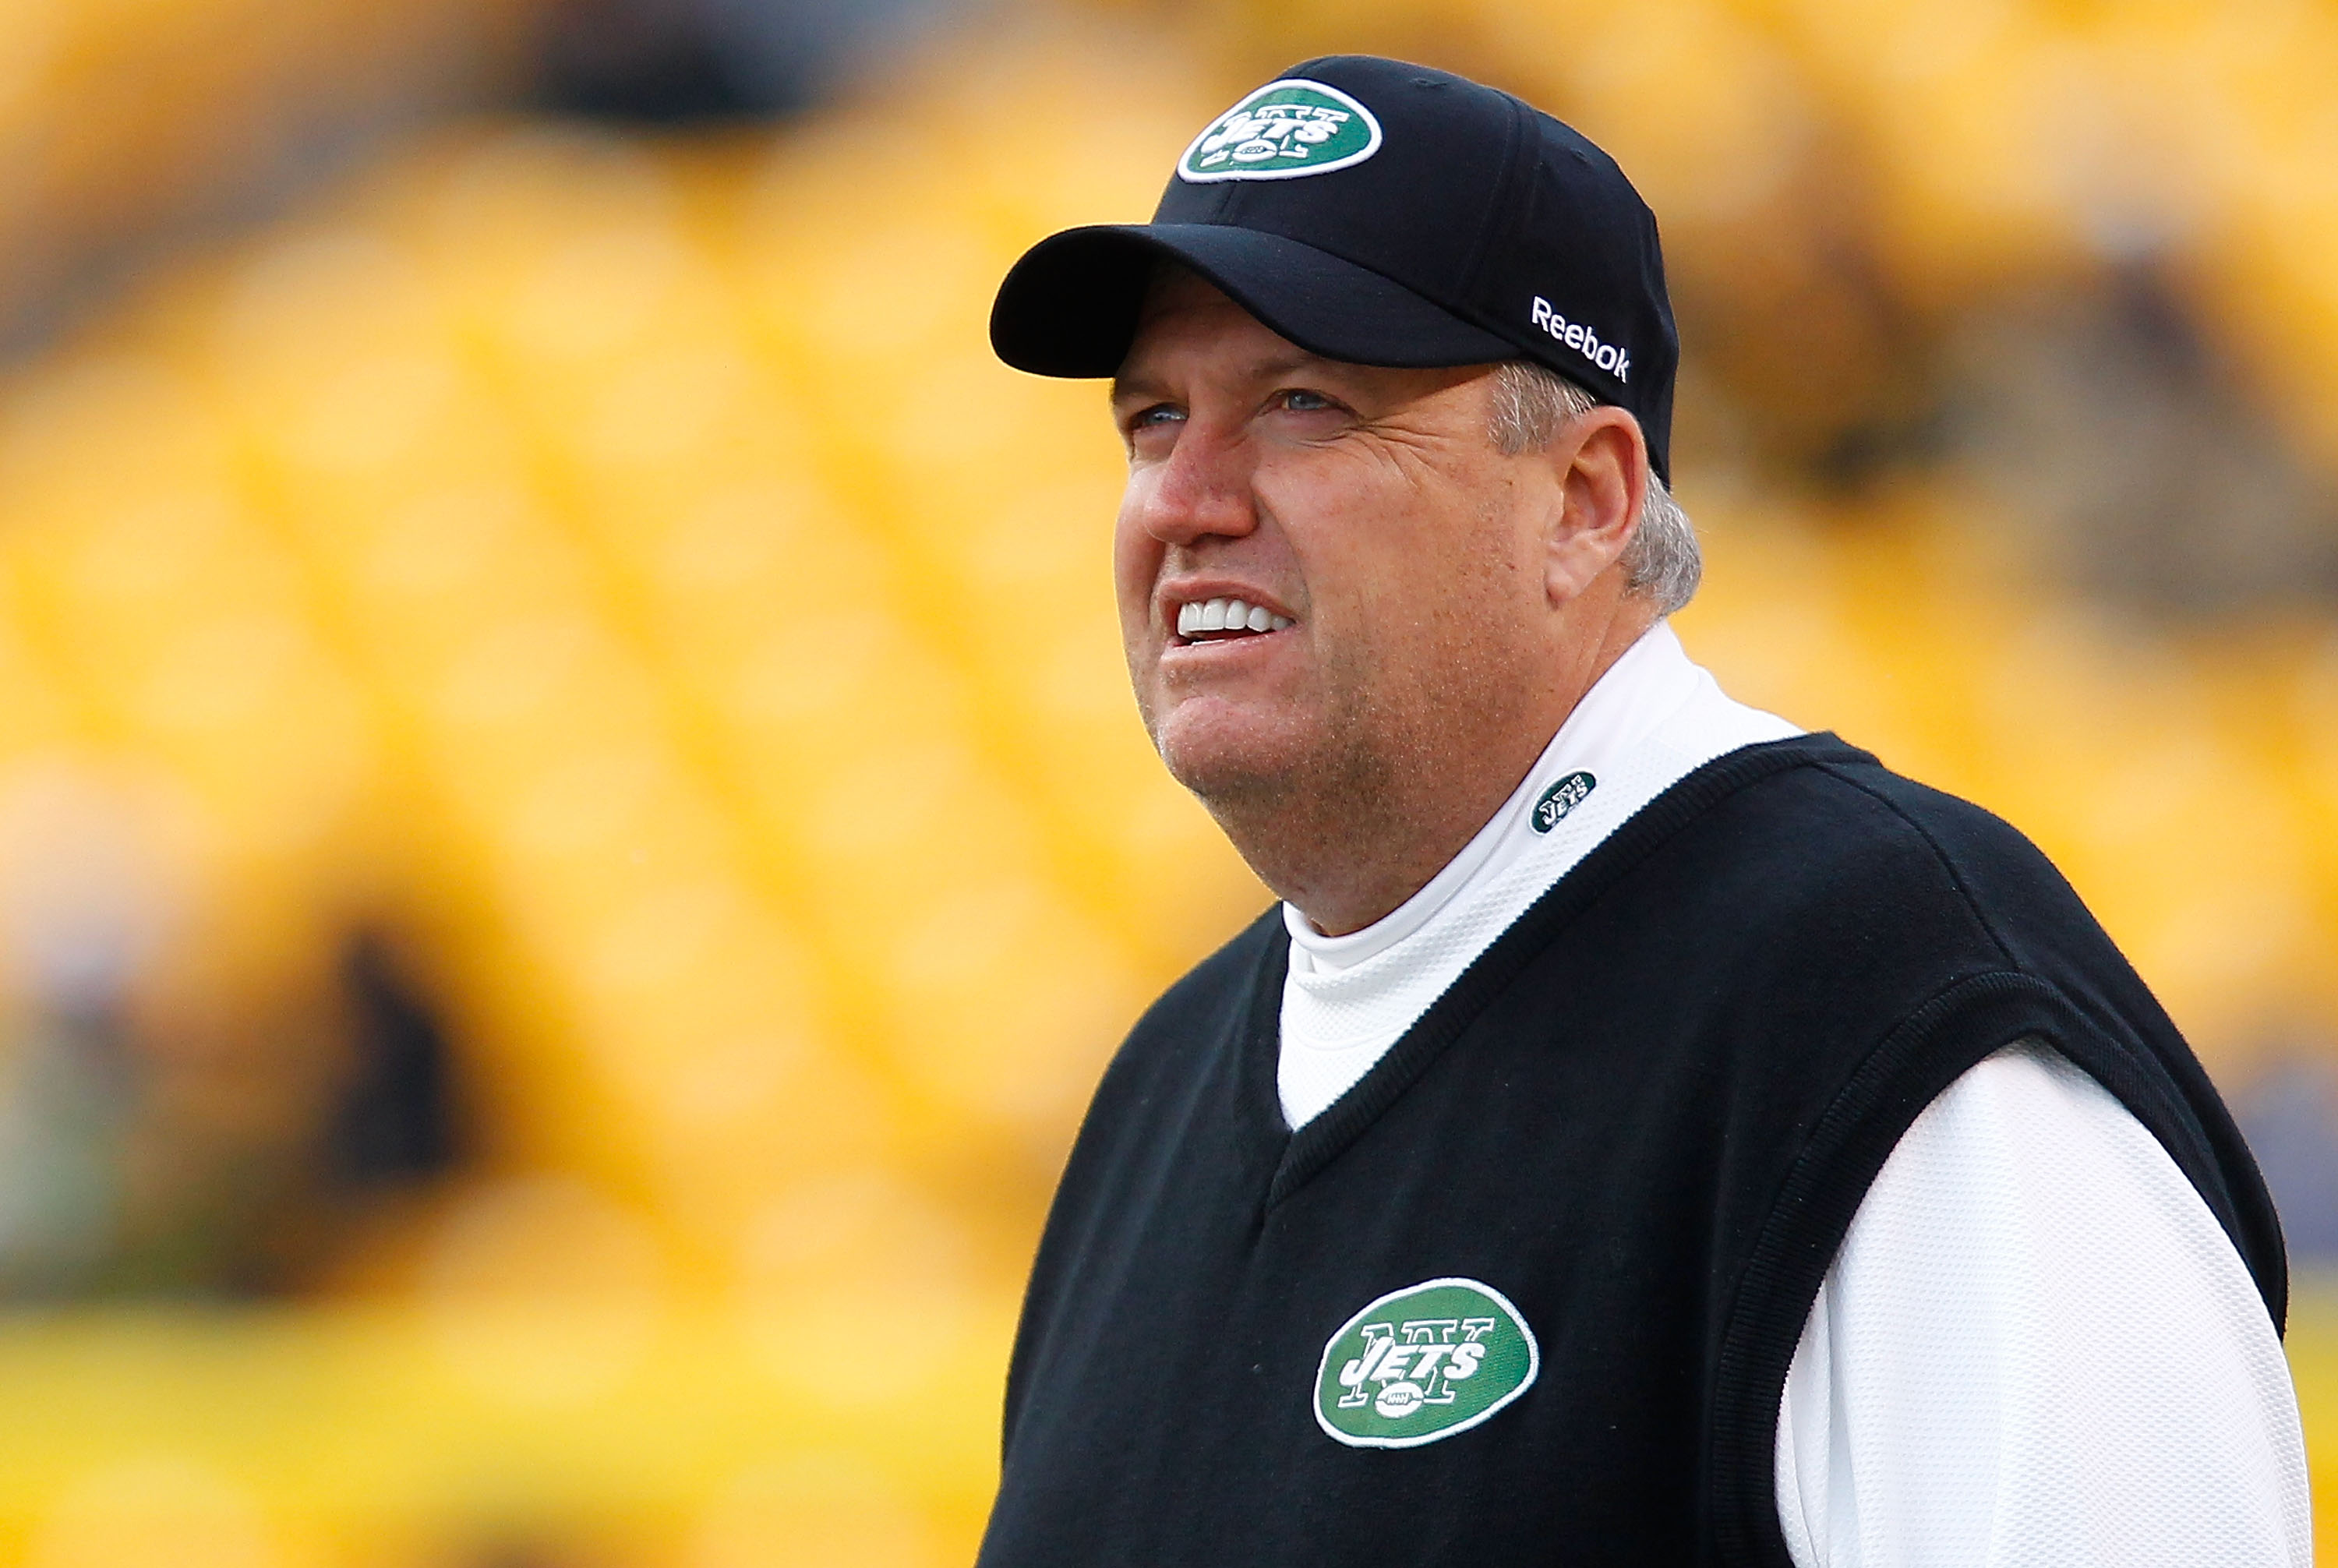 PITTSBURGH - DECEMBER 19:  Head coach Rex Ryan of the New York Jets watches his team warm up before the game against the Pittsburgh Steelers on December 19, 2010 at Heinz Field in Pittsburgh, Pennsylvania.  (Photo by Jared Wickerham/Getty Images)